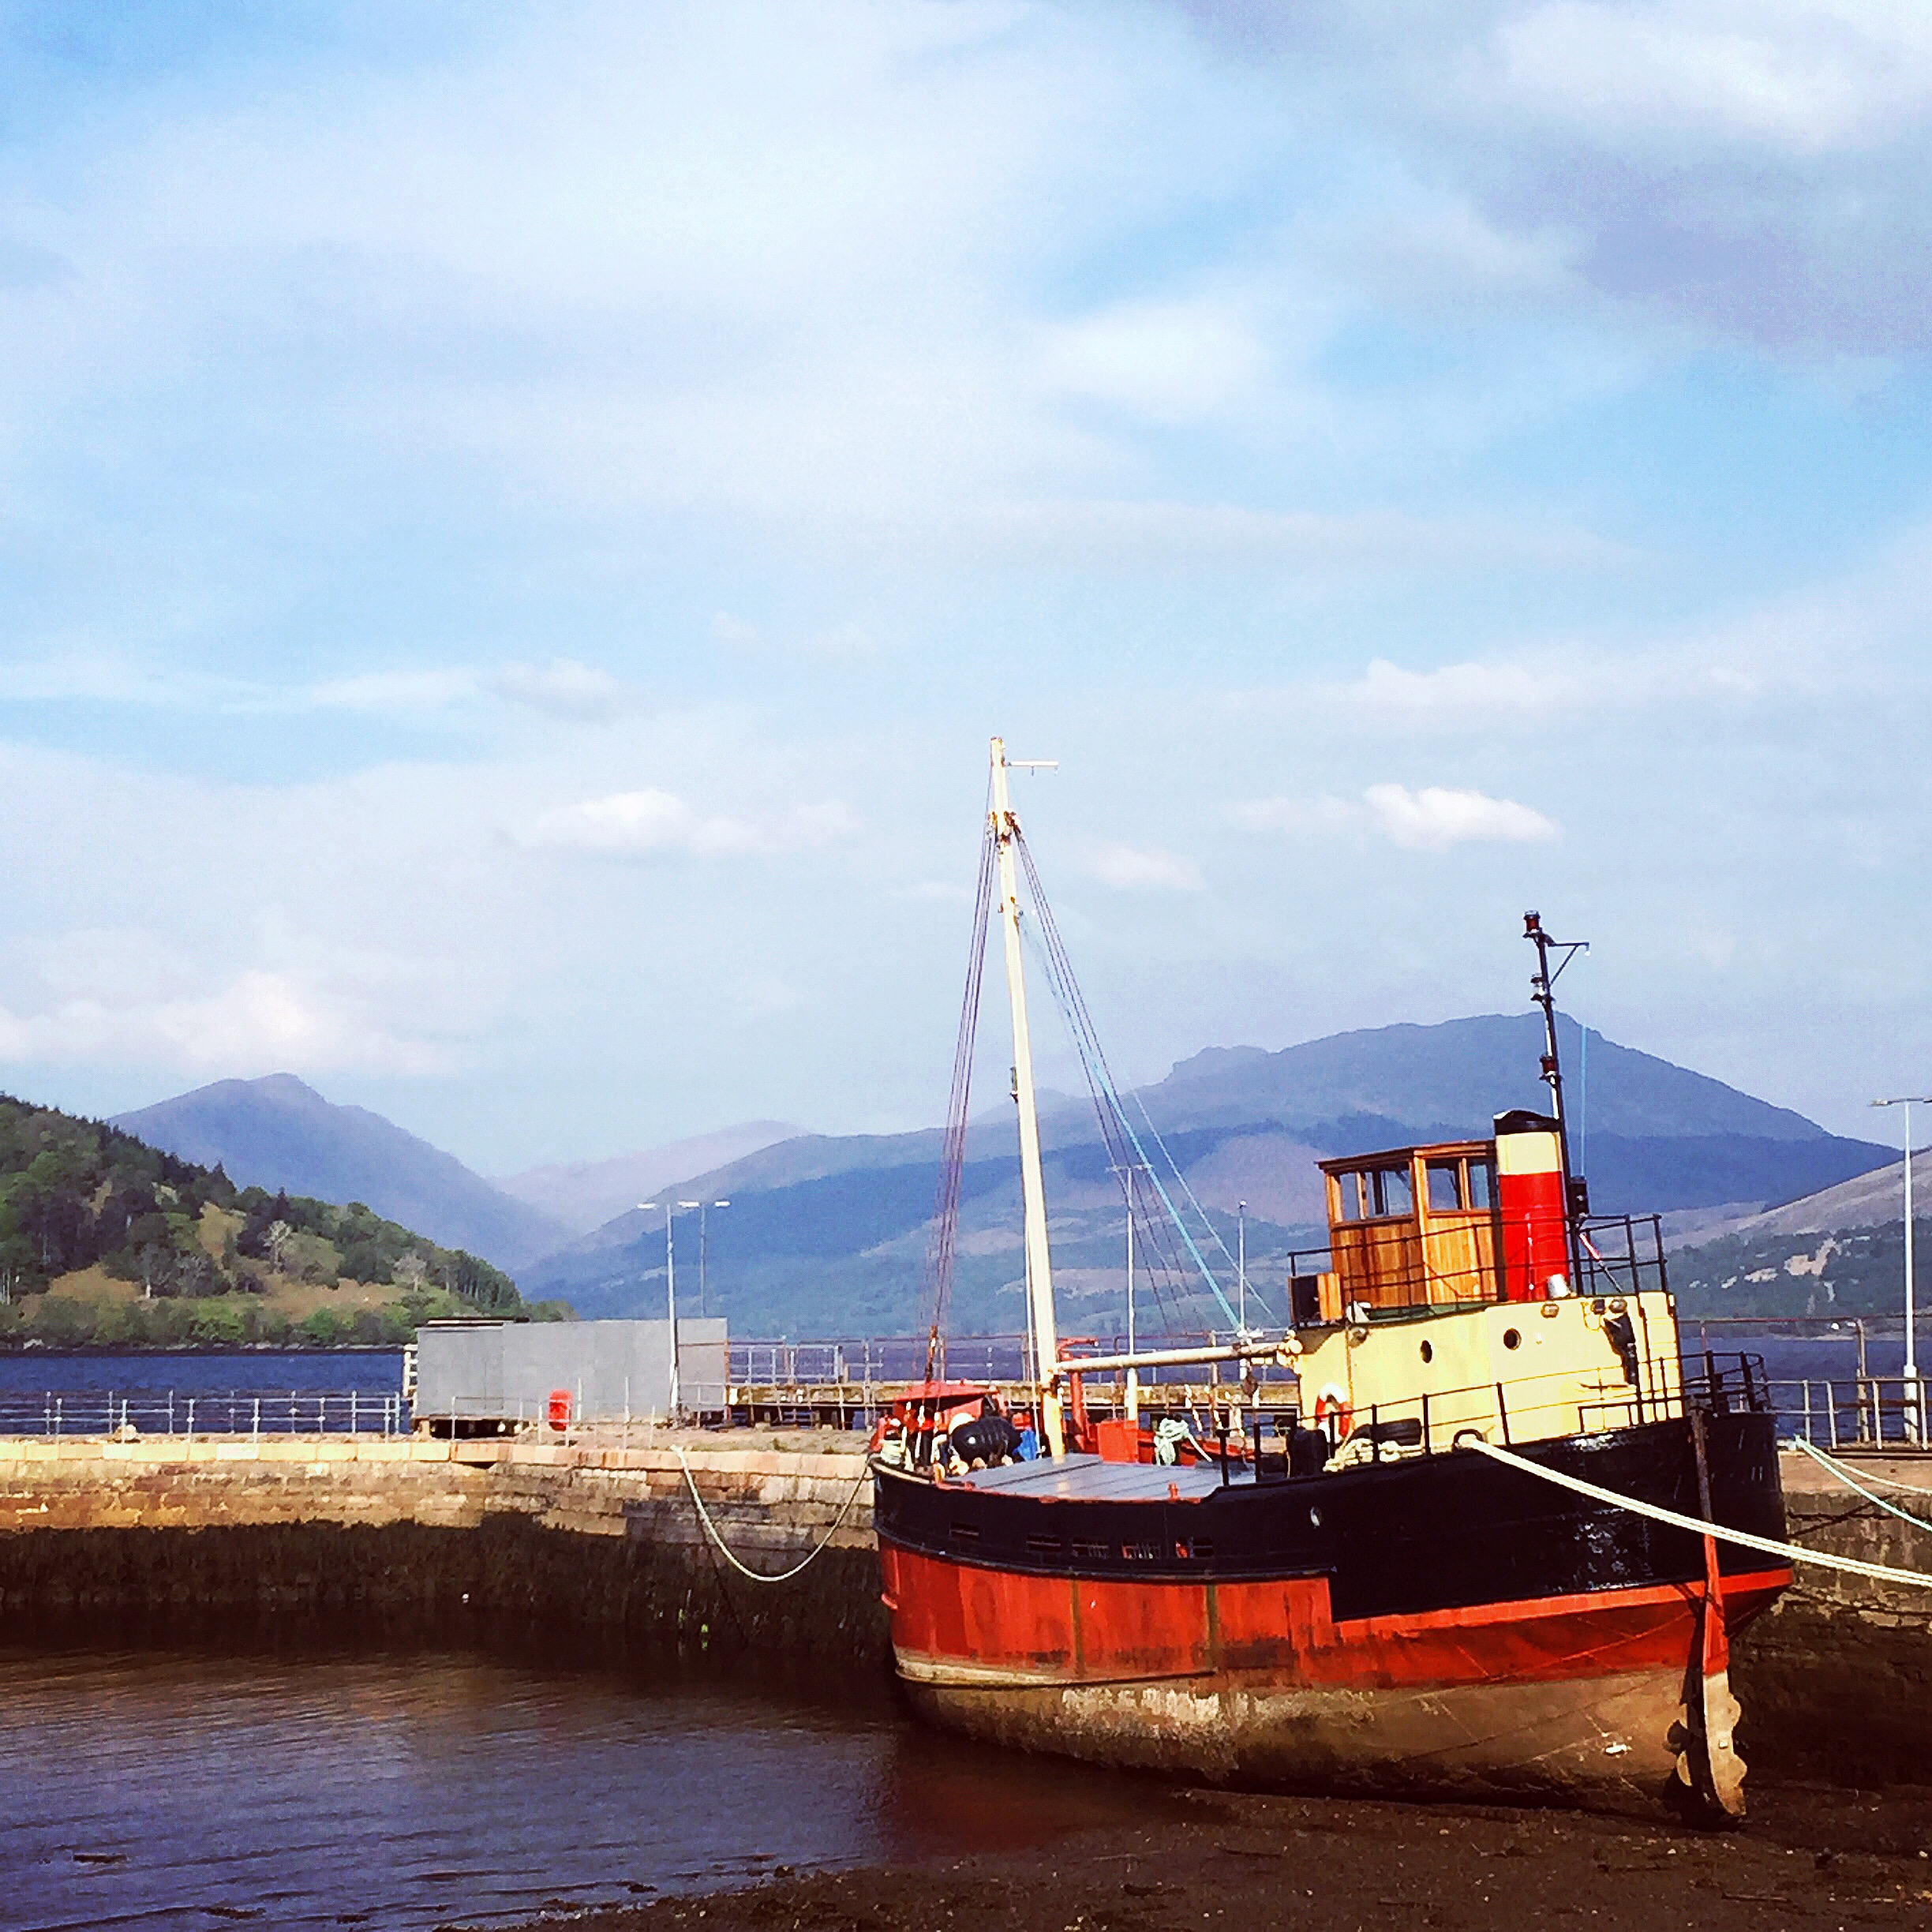 scotland-inveraray-boat.JPG